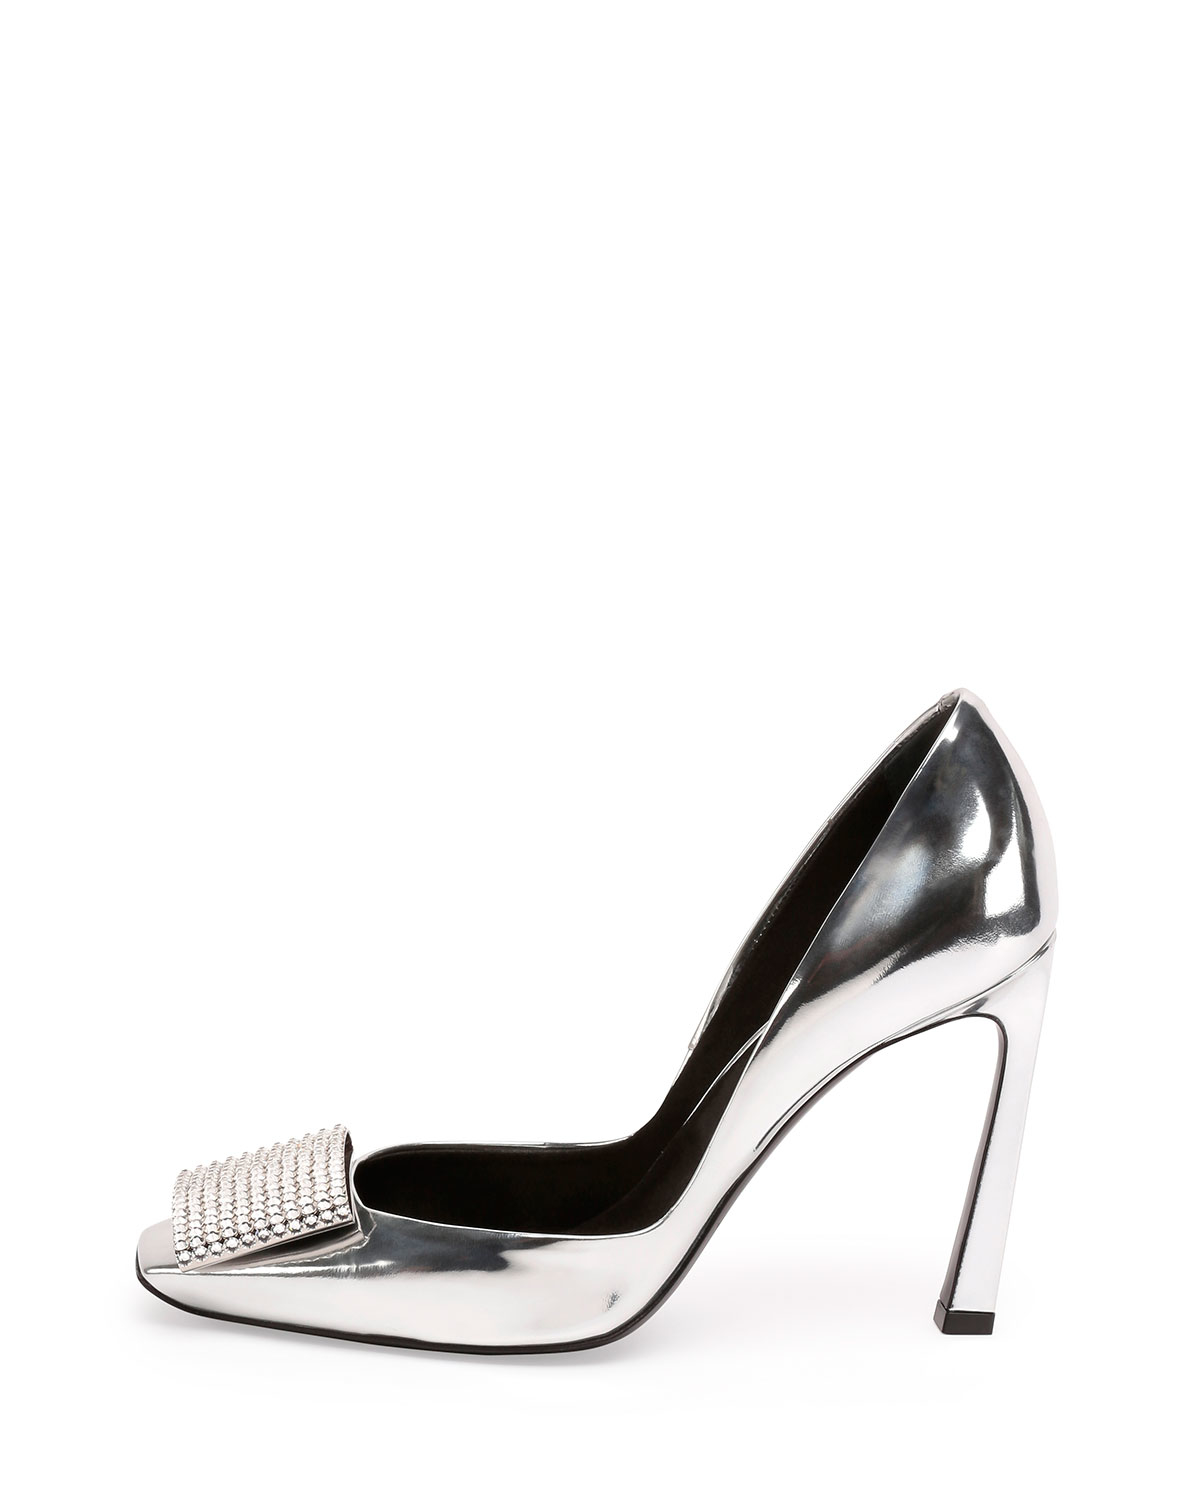 Roger Vivier Metallic Leather Pump discount best store to get qIGg4Fg